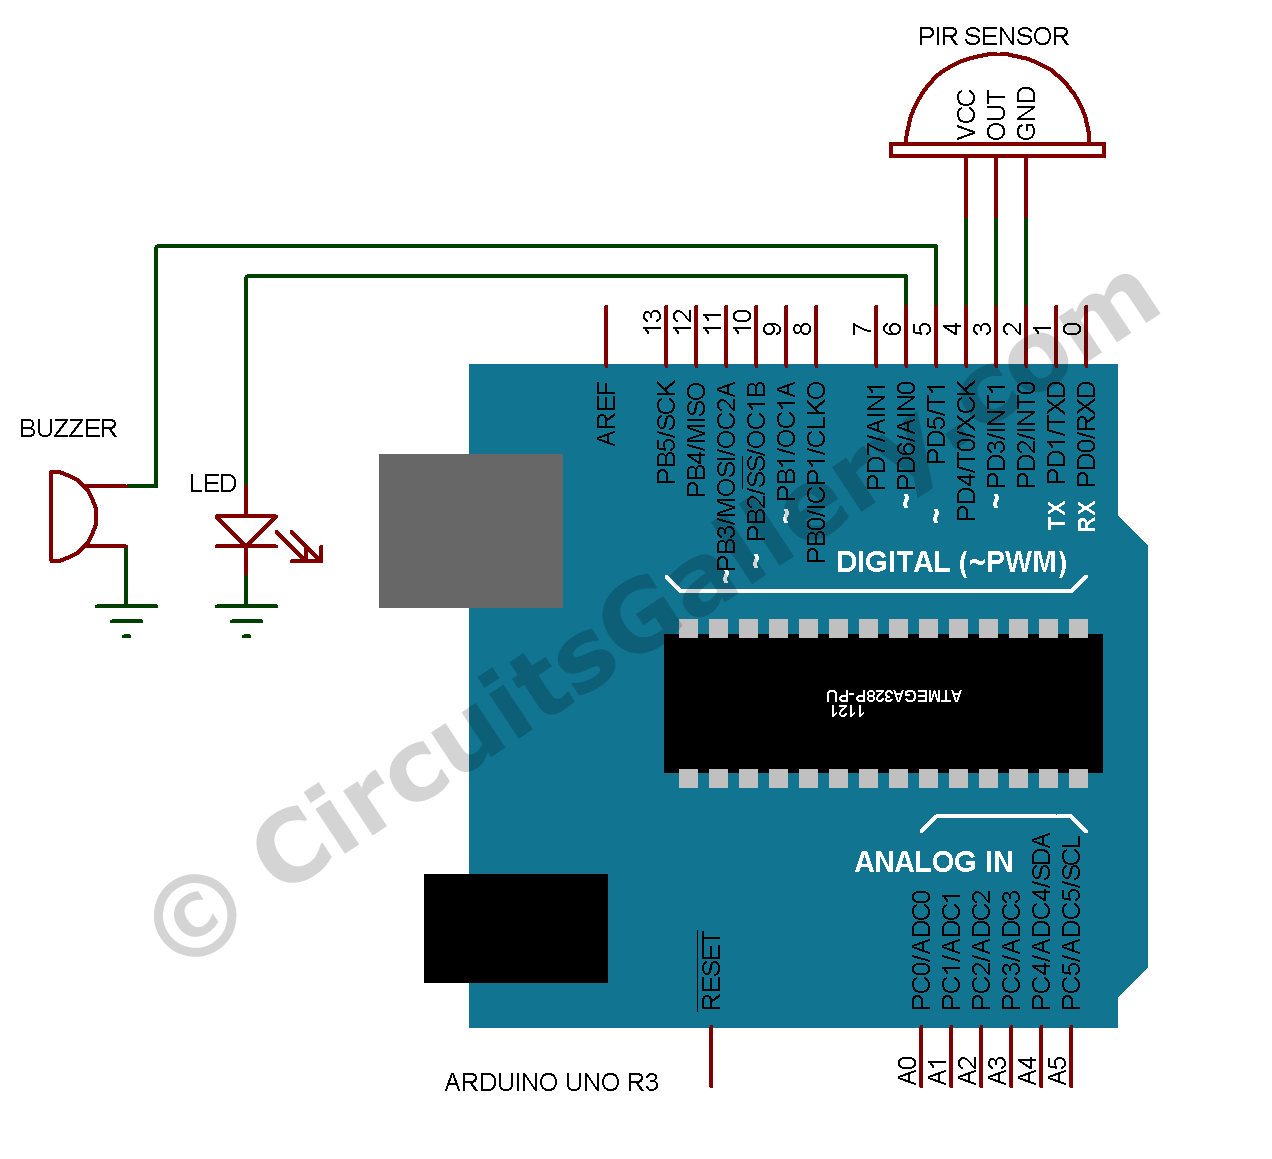 alarm pir wiring diagram uk subaru wrx radio one of our arduino projects right here best home security